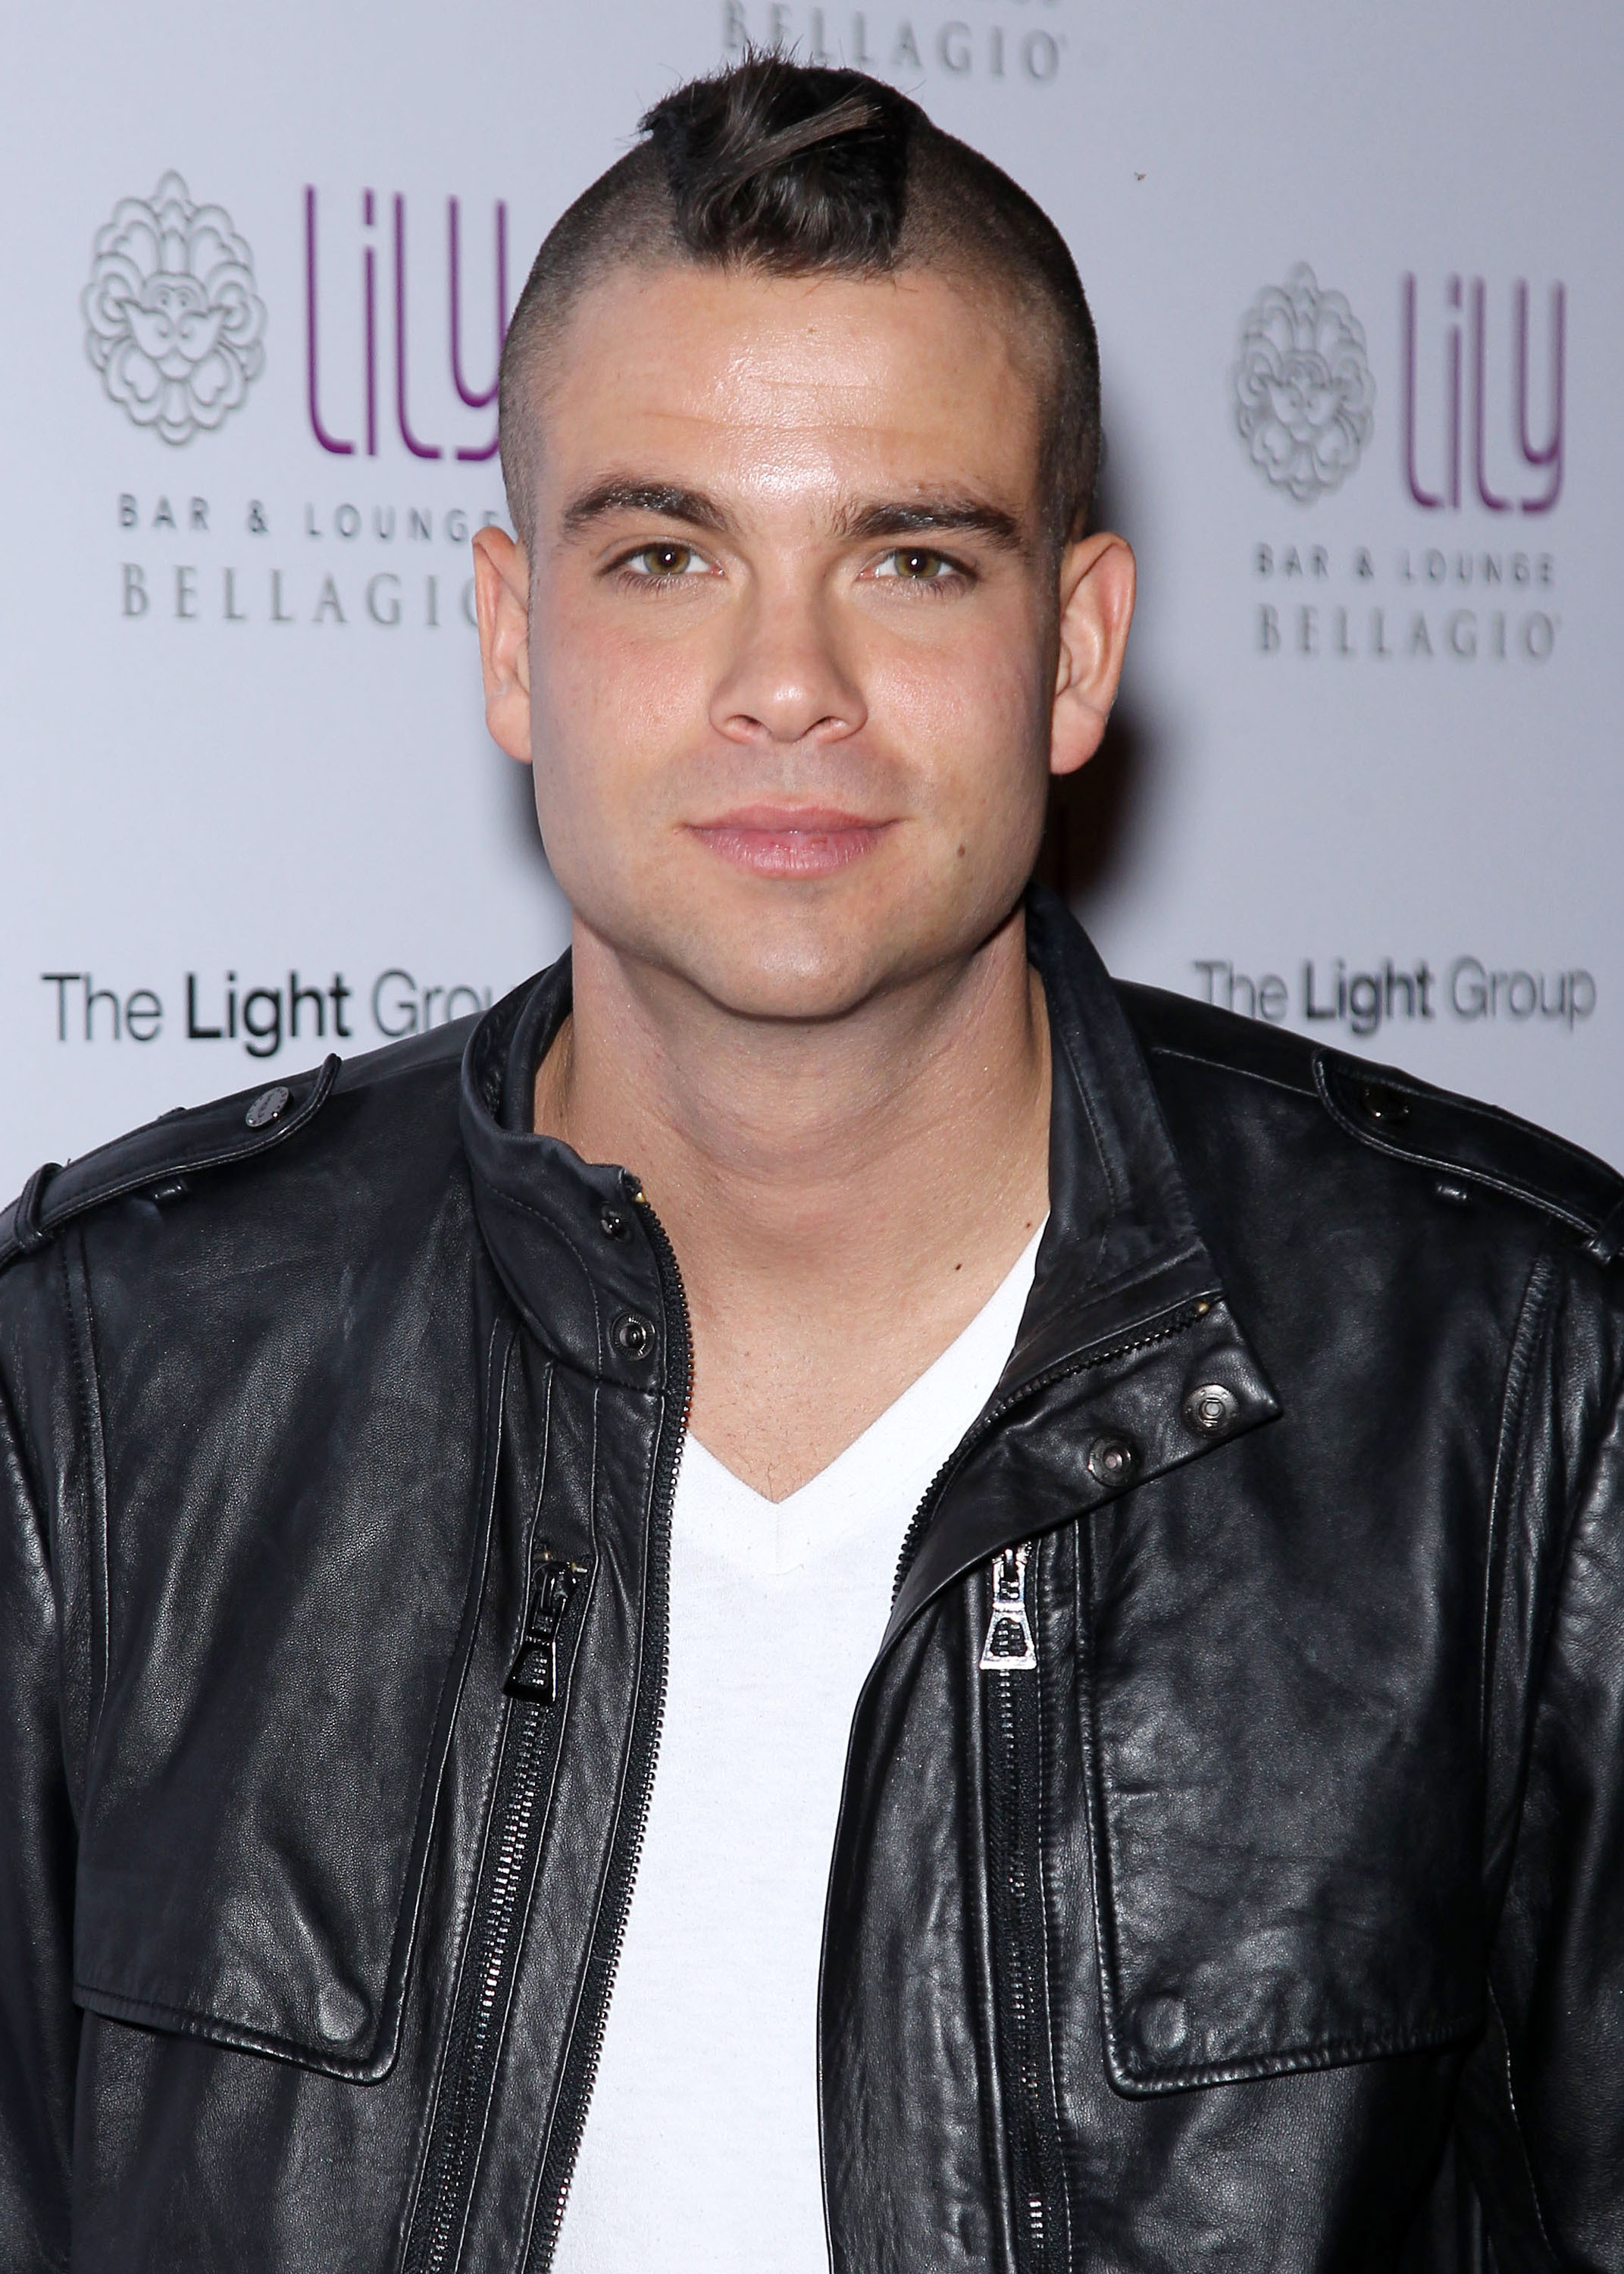 Mark Salling                  The Light Group celebrates grand opening of Lily Bar and Lounge at The Bellagio Resort and Casino                  Las Vegas, Nevada - 18.02.12                                    Featuring: Mark Salling                  Where: United States                  When: 18 Feb 2012                  Credit: WENN